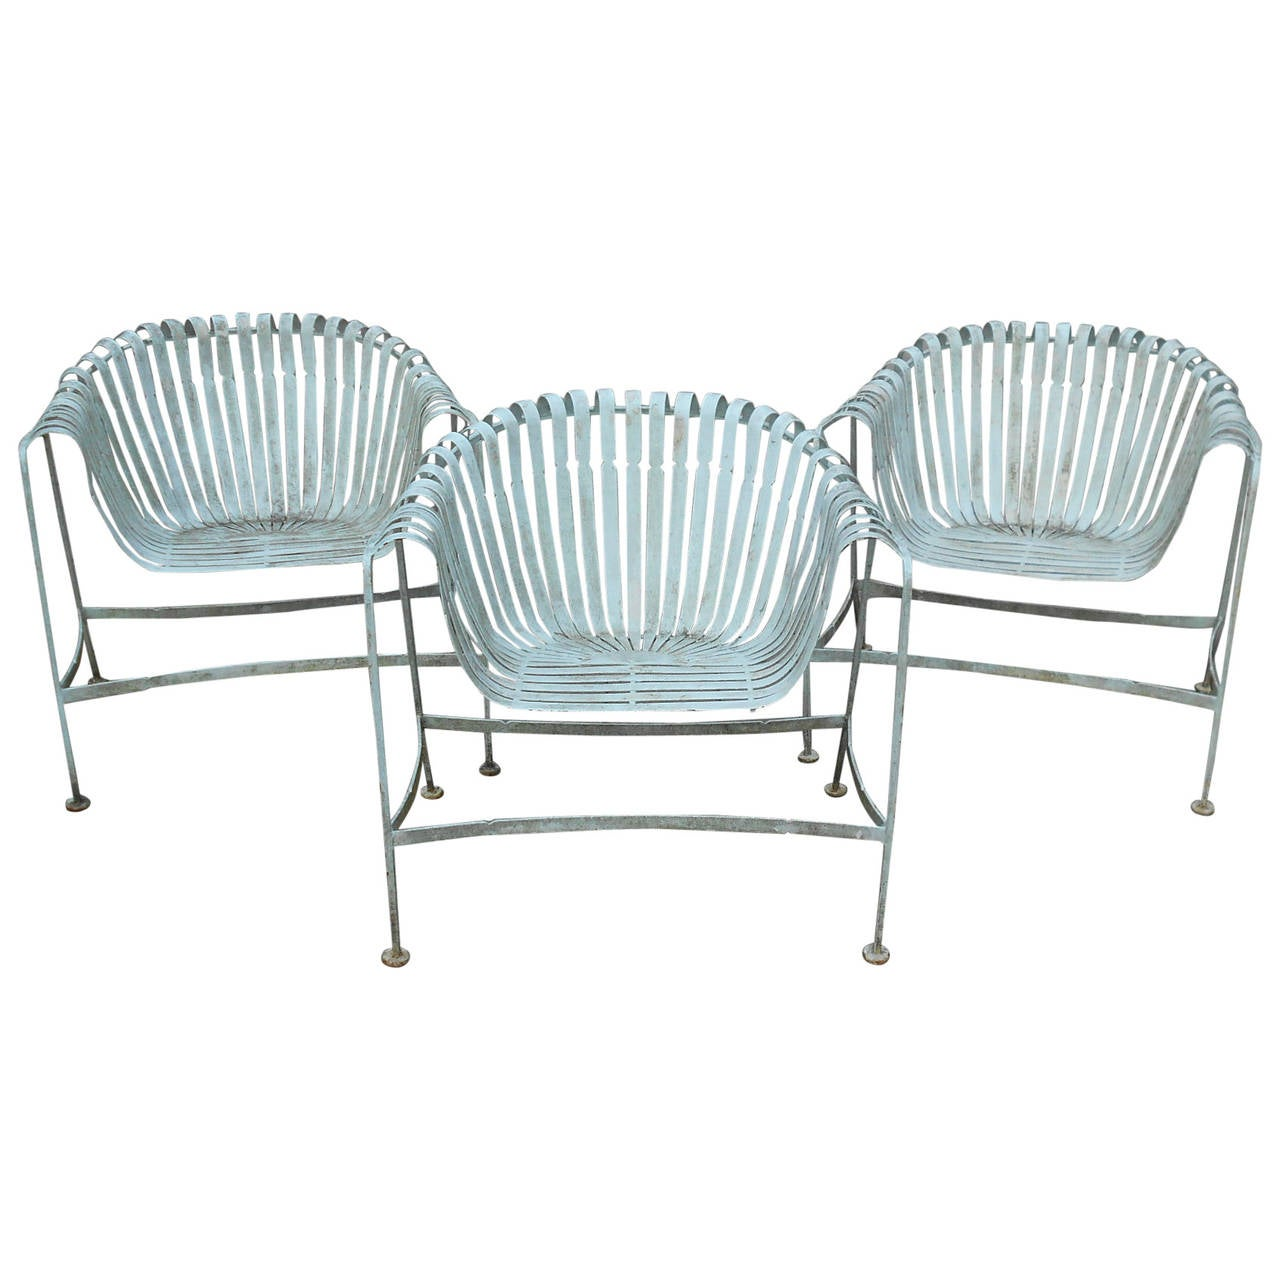 Sculptural russell woodard patio lounge chairs at 1stdibs for Woodard outdoor furniture